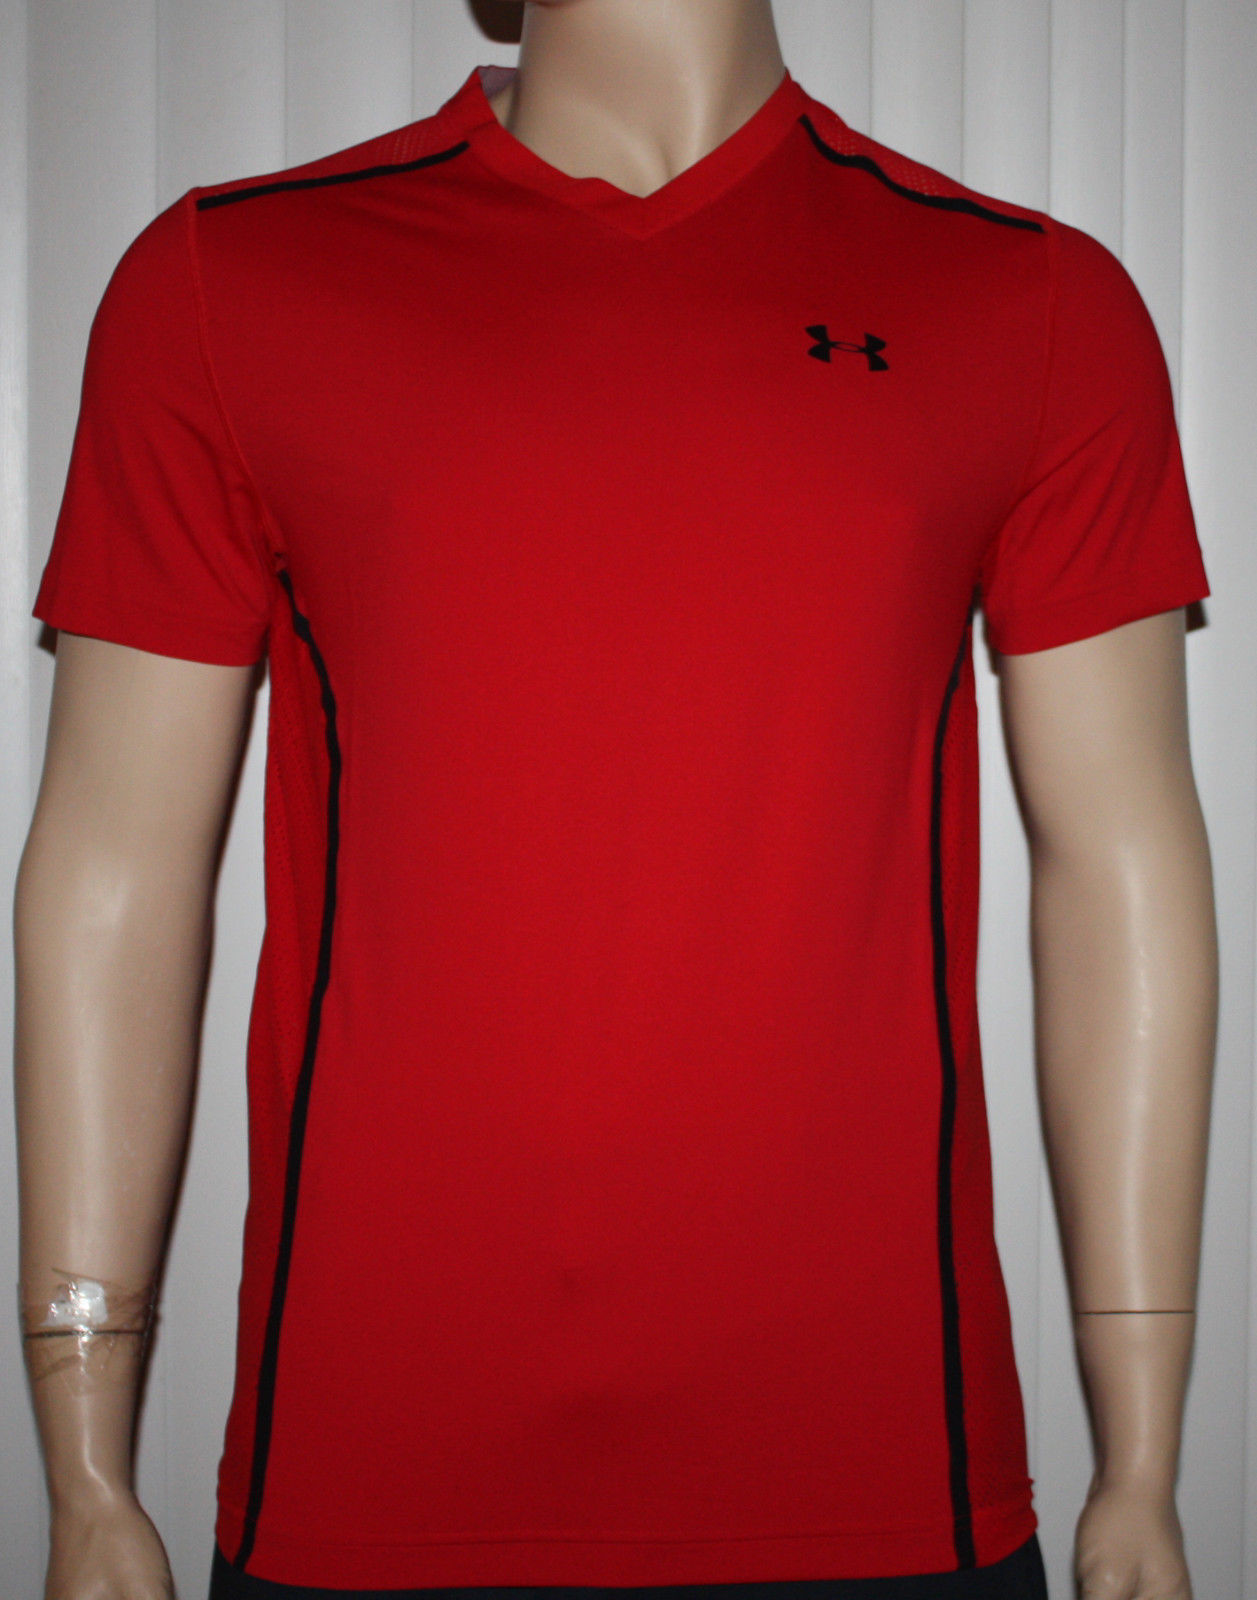 Under Armour VENT UA HeatGear Men's Red/Black Fitted Shirt (Large) 09976